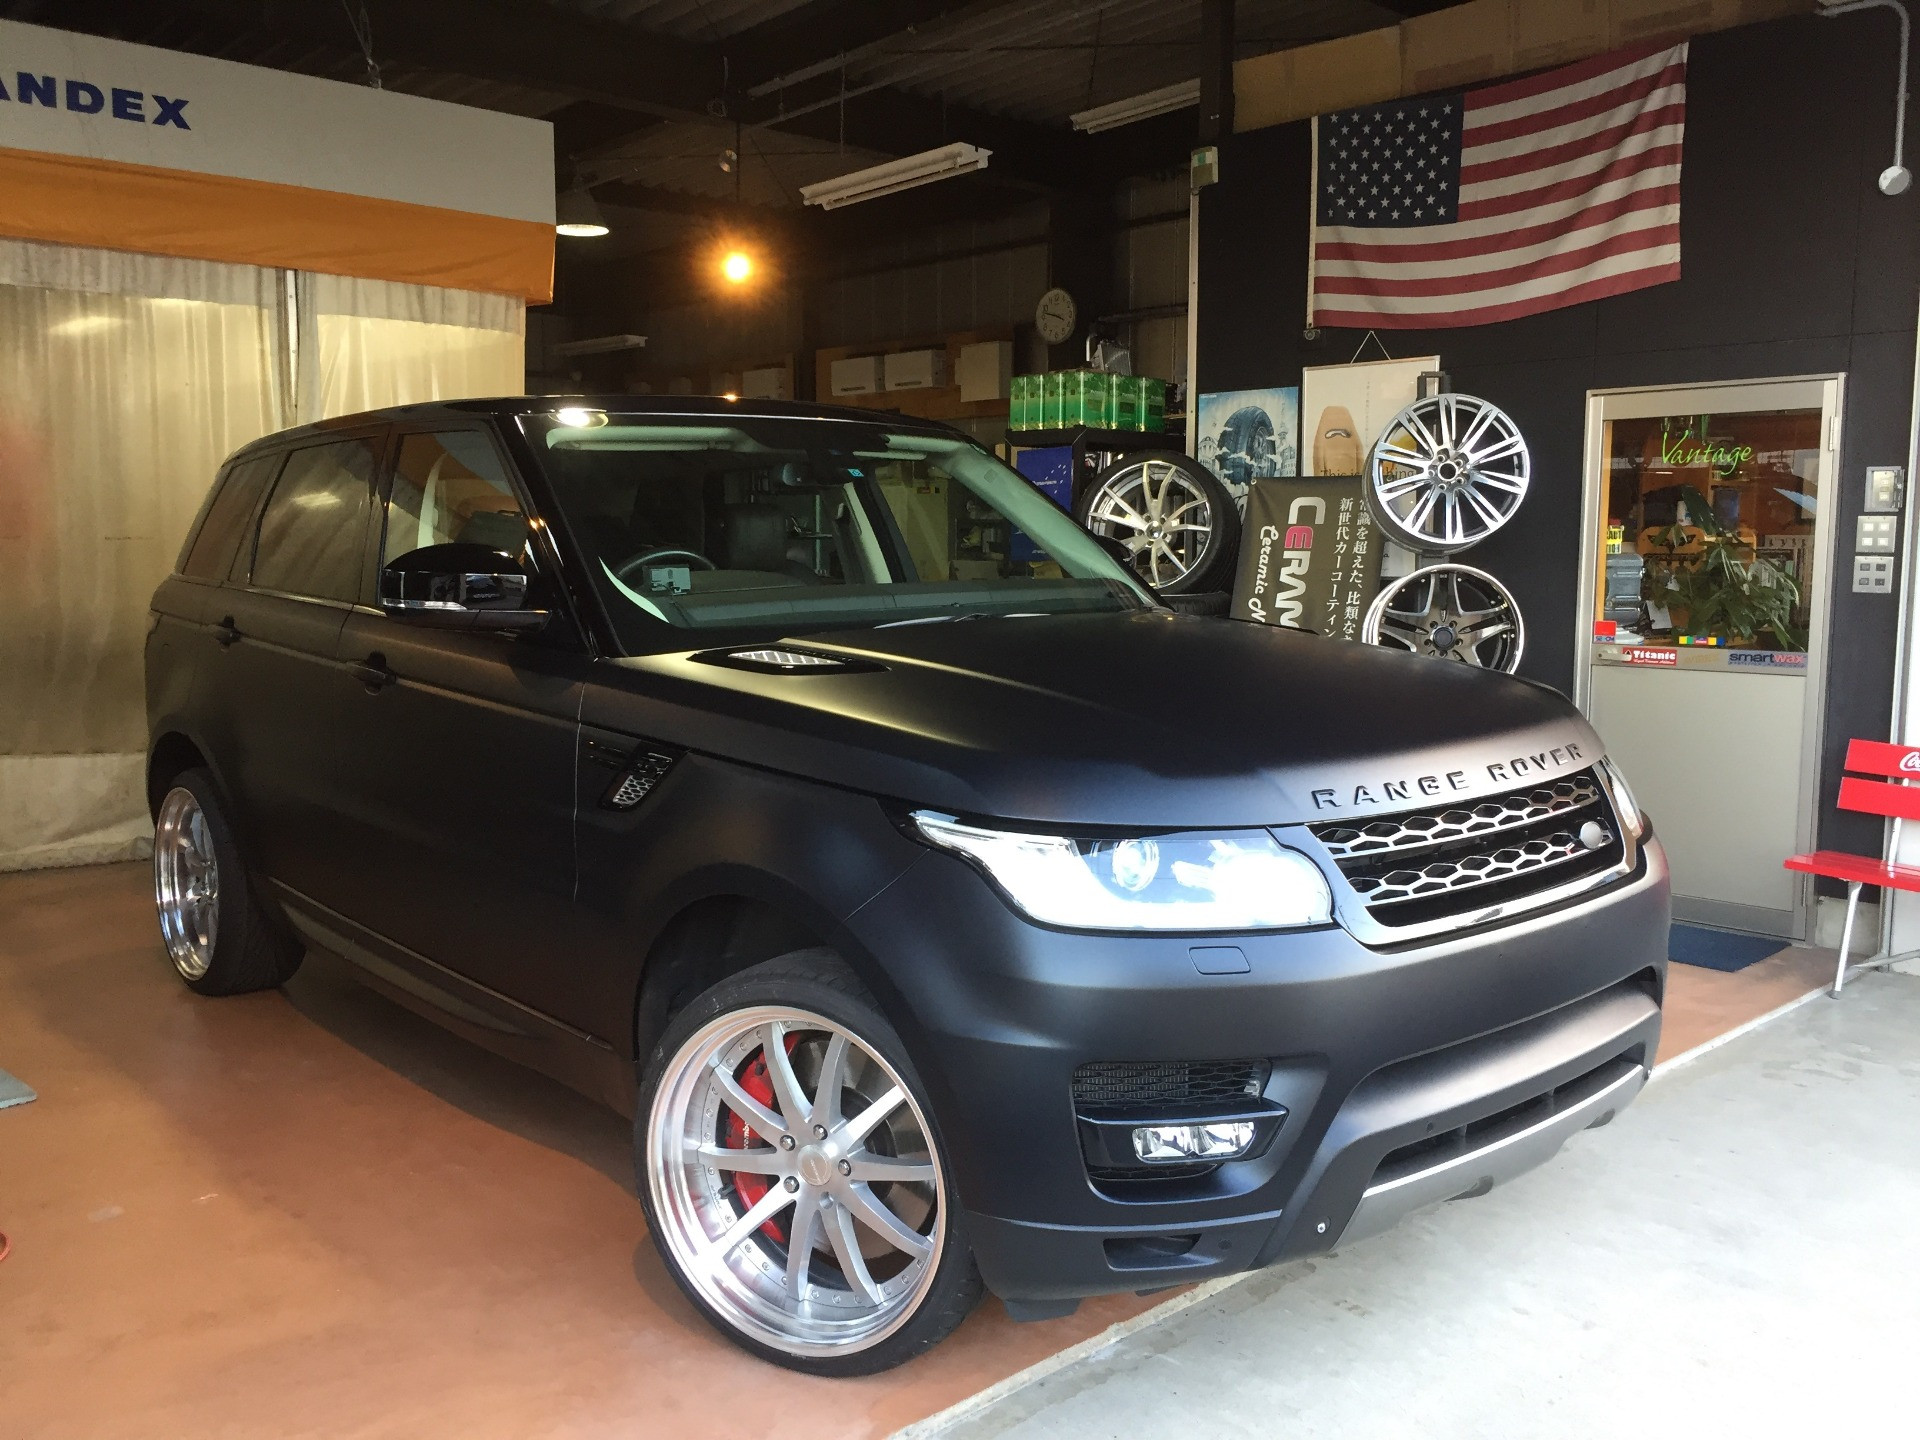 RANGE ROVER SPORTS ALL PAINT